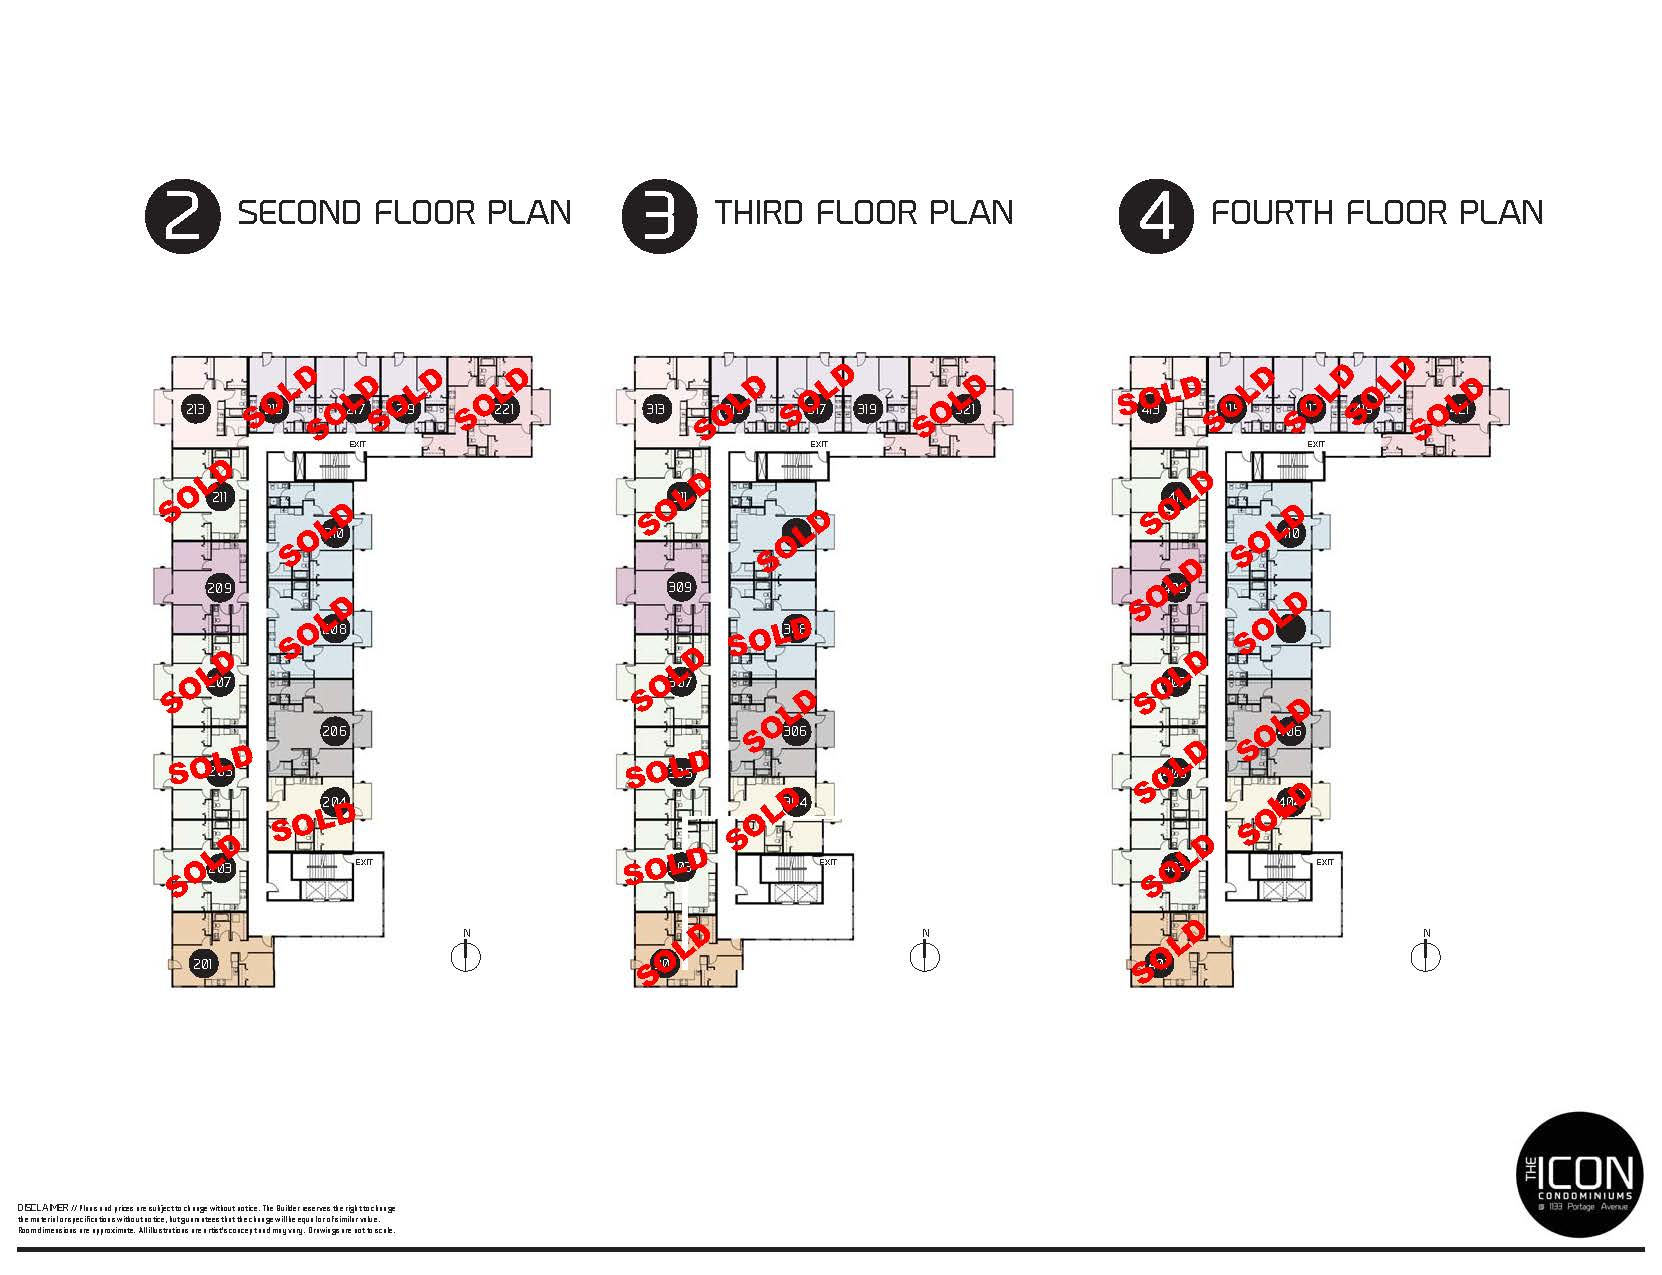 MAY09-2019_Icon Floor Plans 2-4.jpg